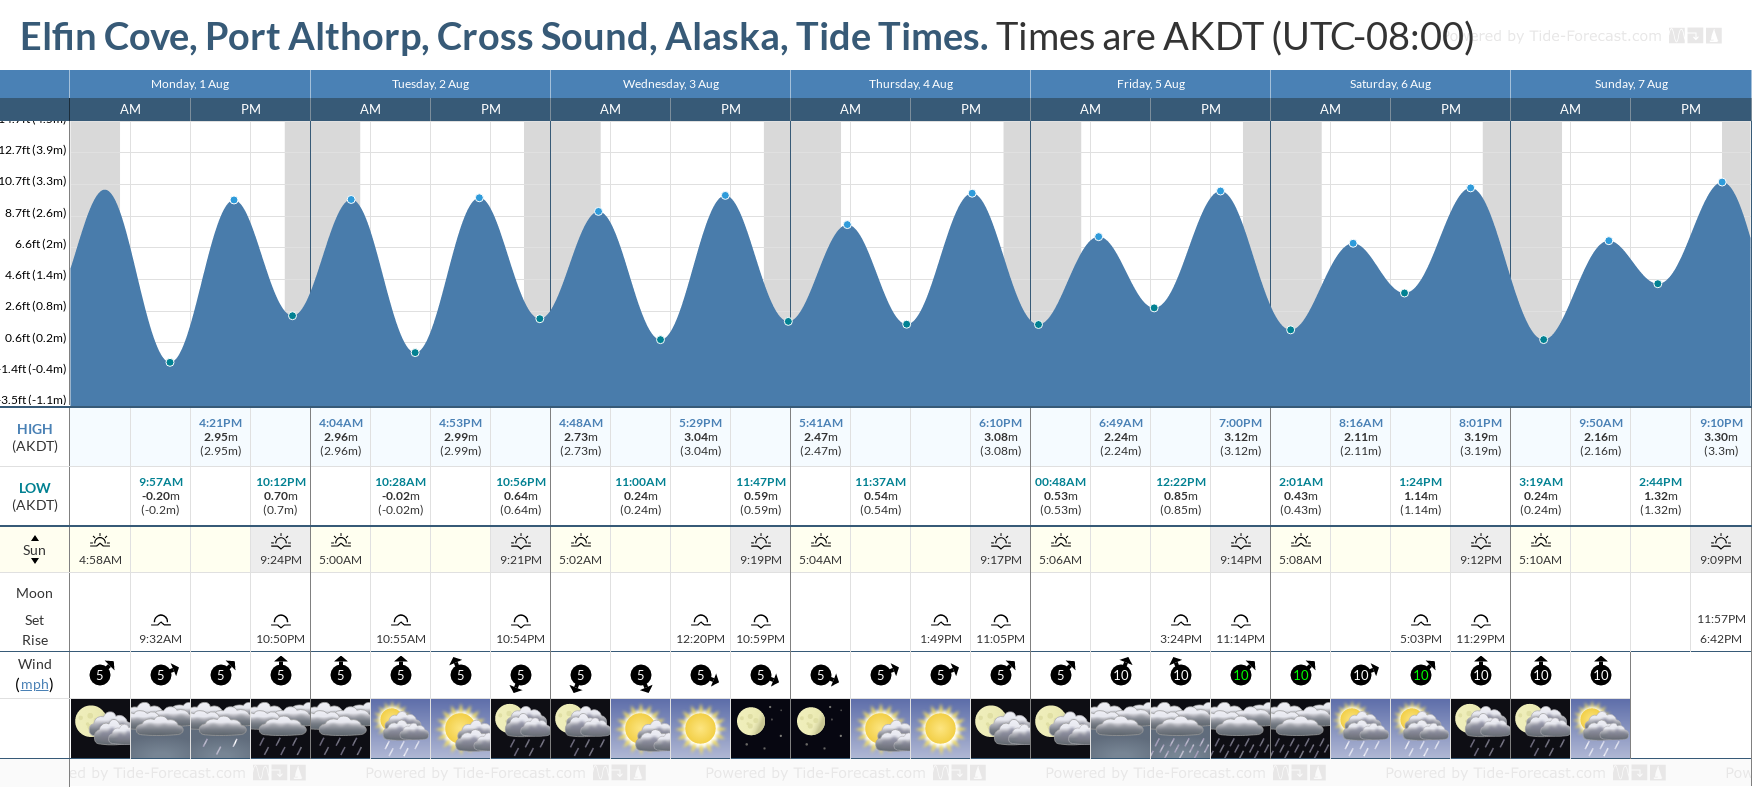 Elfin Cove, Port Althorp, Cross Sound, Alaska Tide Chart including high and low tide tide times for the next 7 days